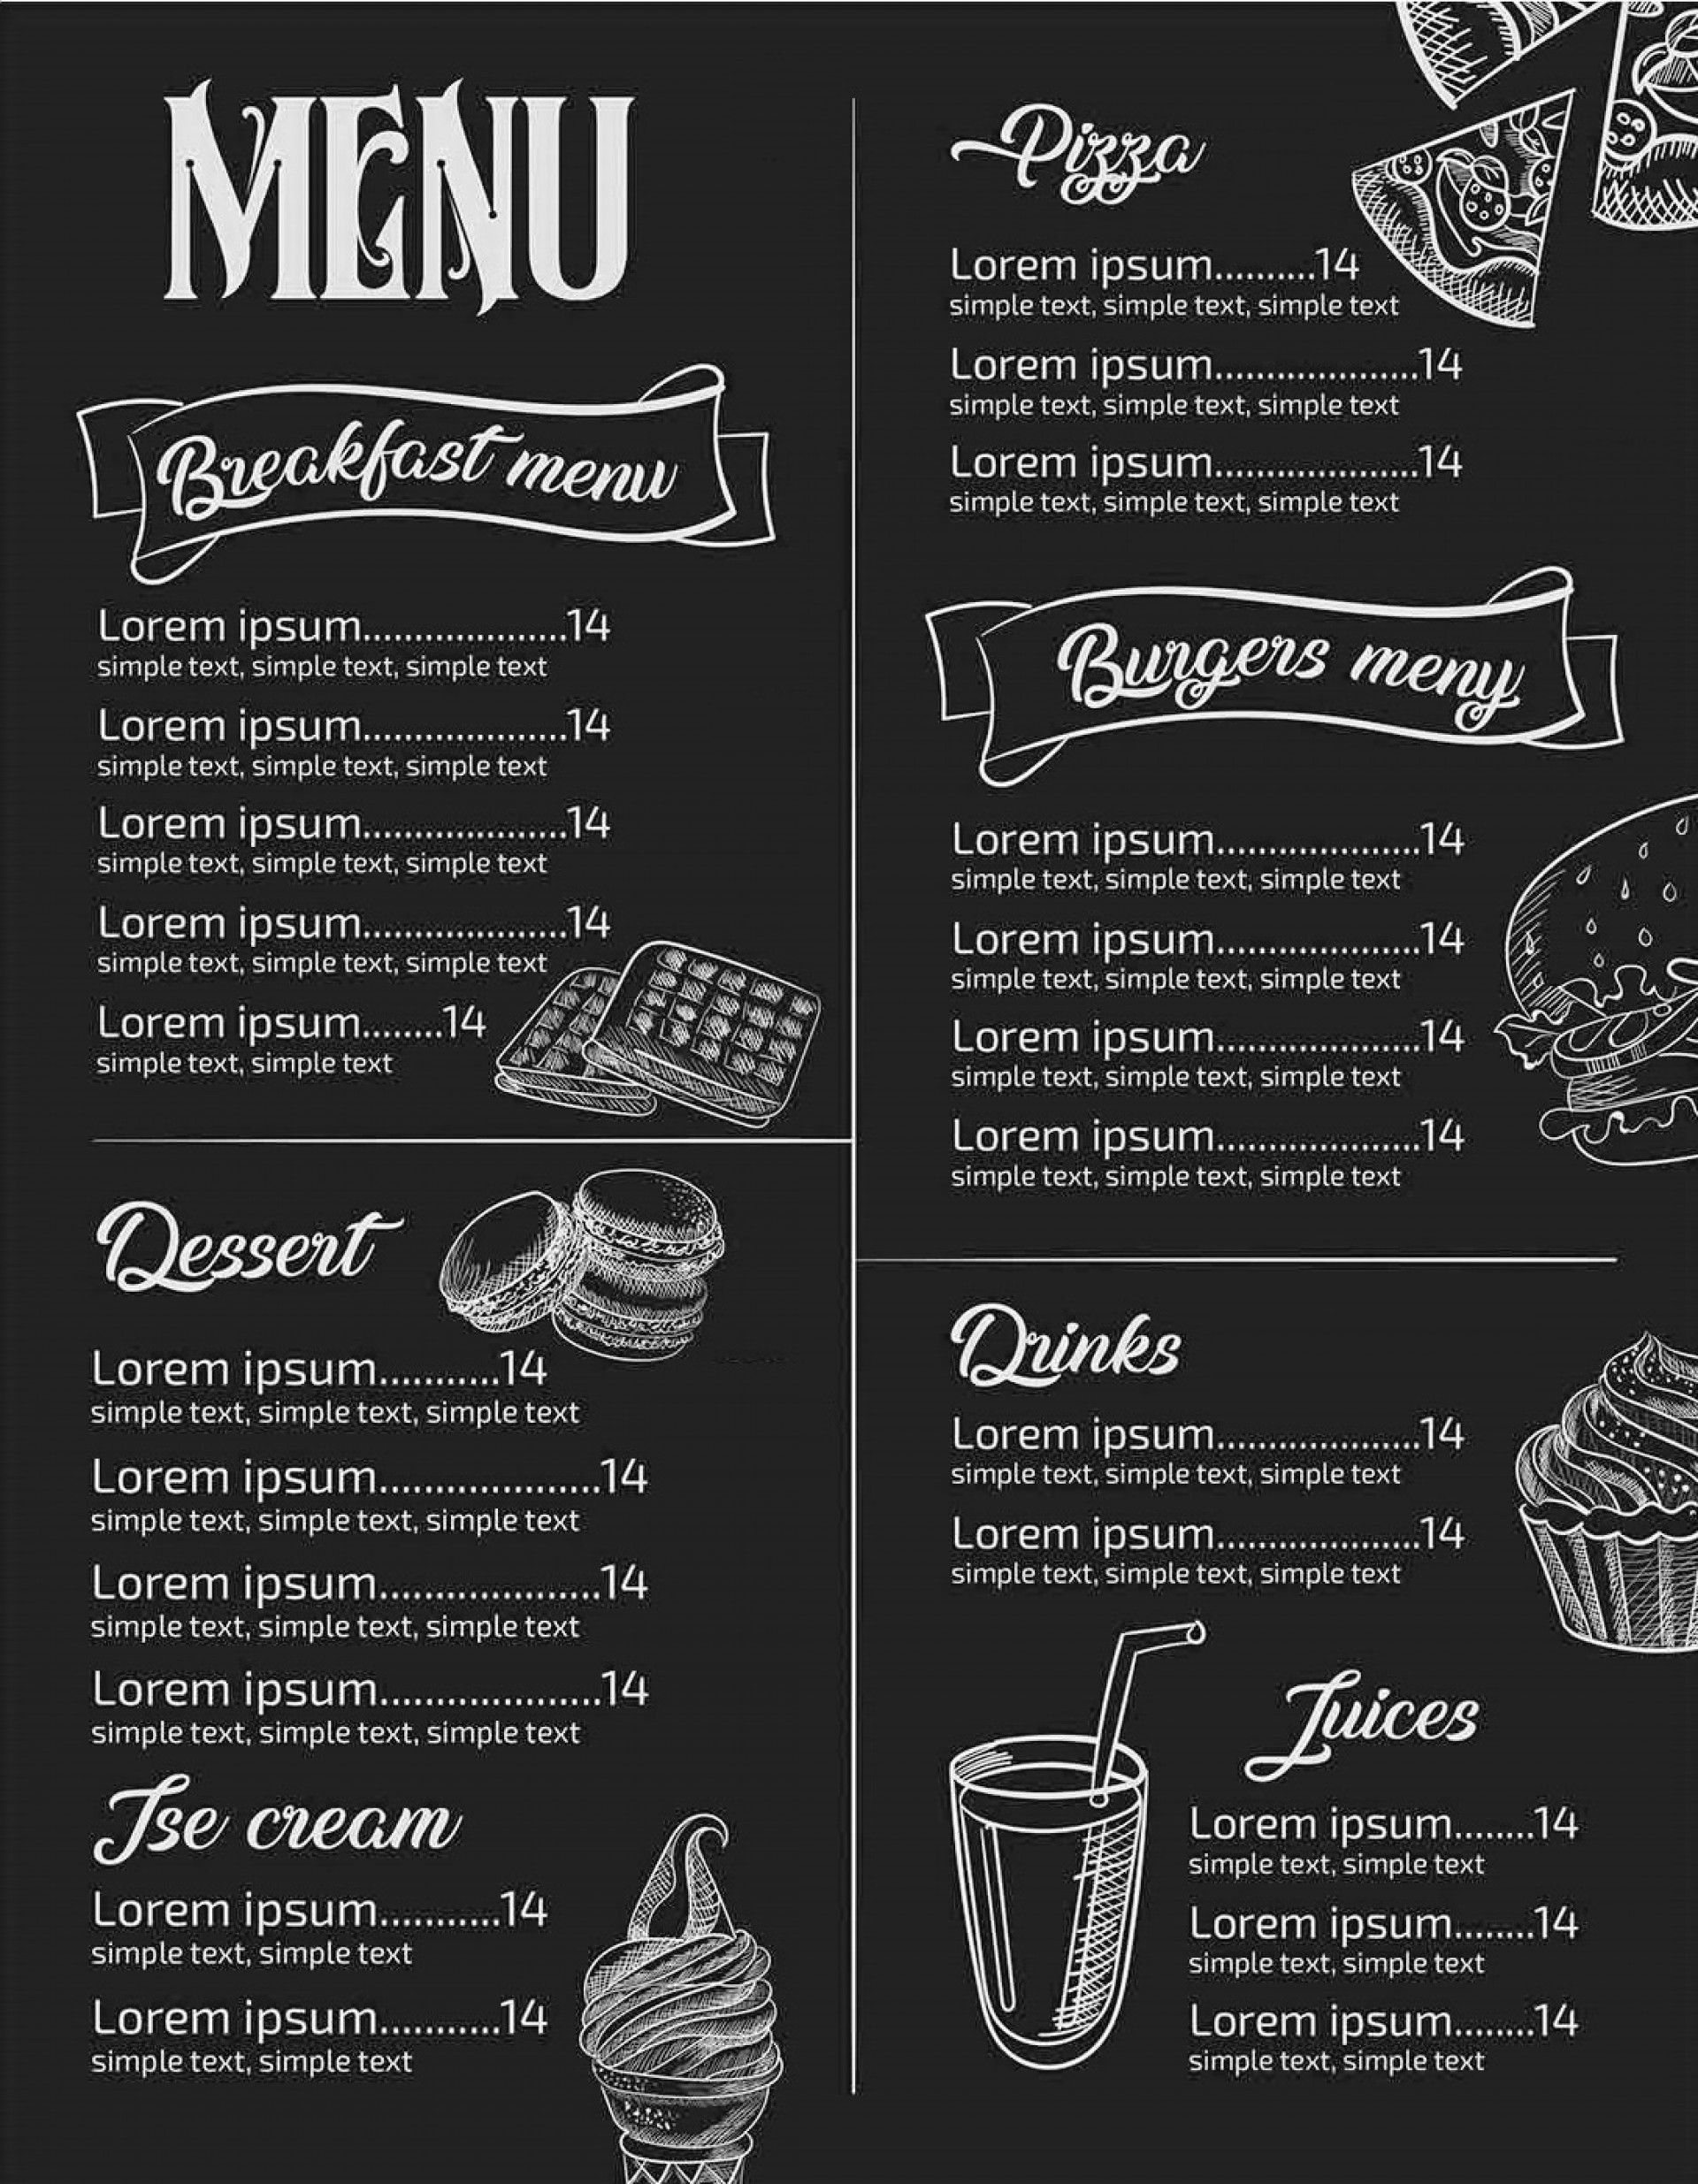 003 Remarkable Menu Template Free Download For Restaurant Picture  Word Psd1920